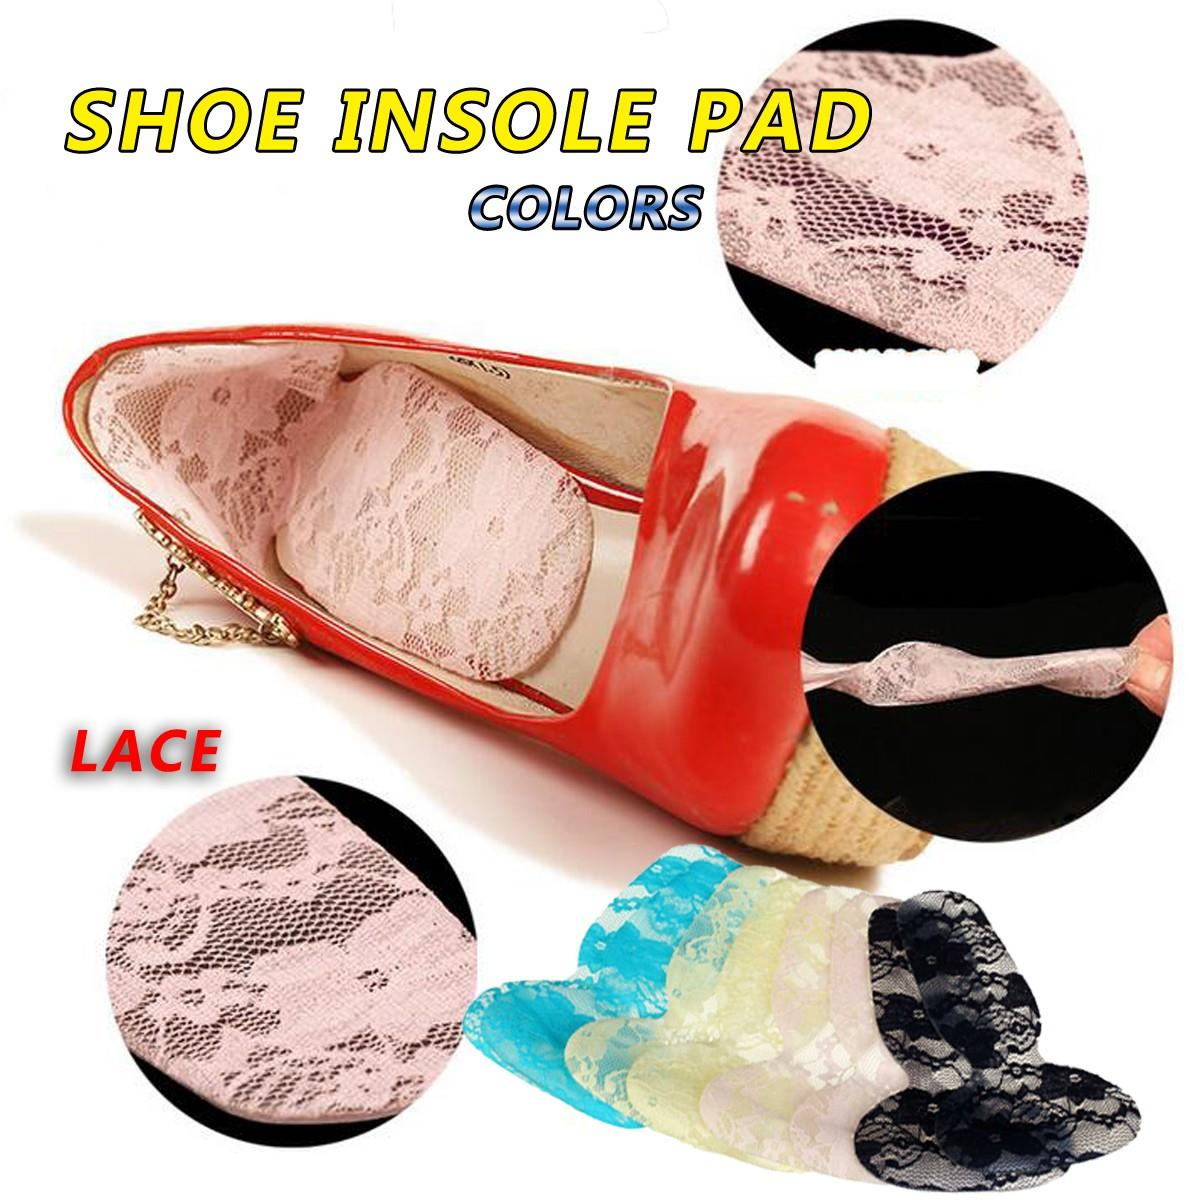 NIS 2018 Protector Anti Slip Cushion Shoe Insert 4 Colors 1 Pair High Heel Insole Pads Soft Silicone Lace Gel Foot Care